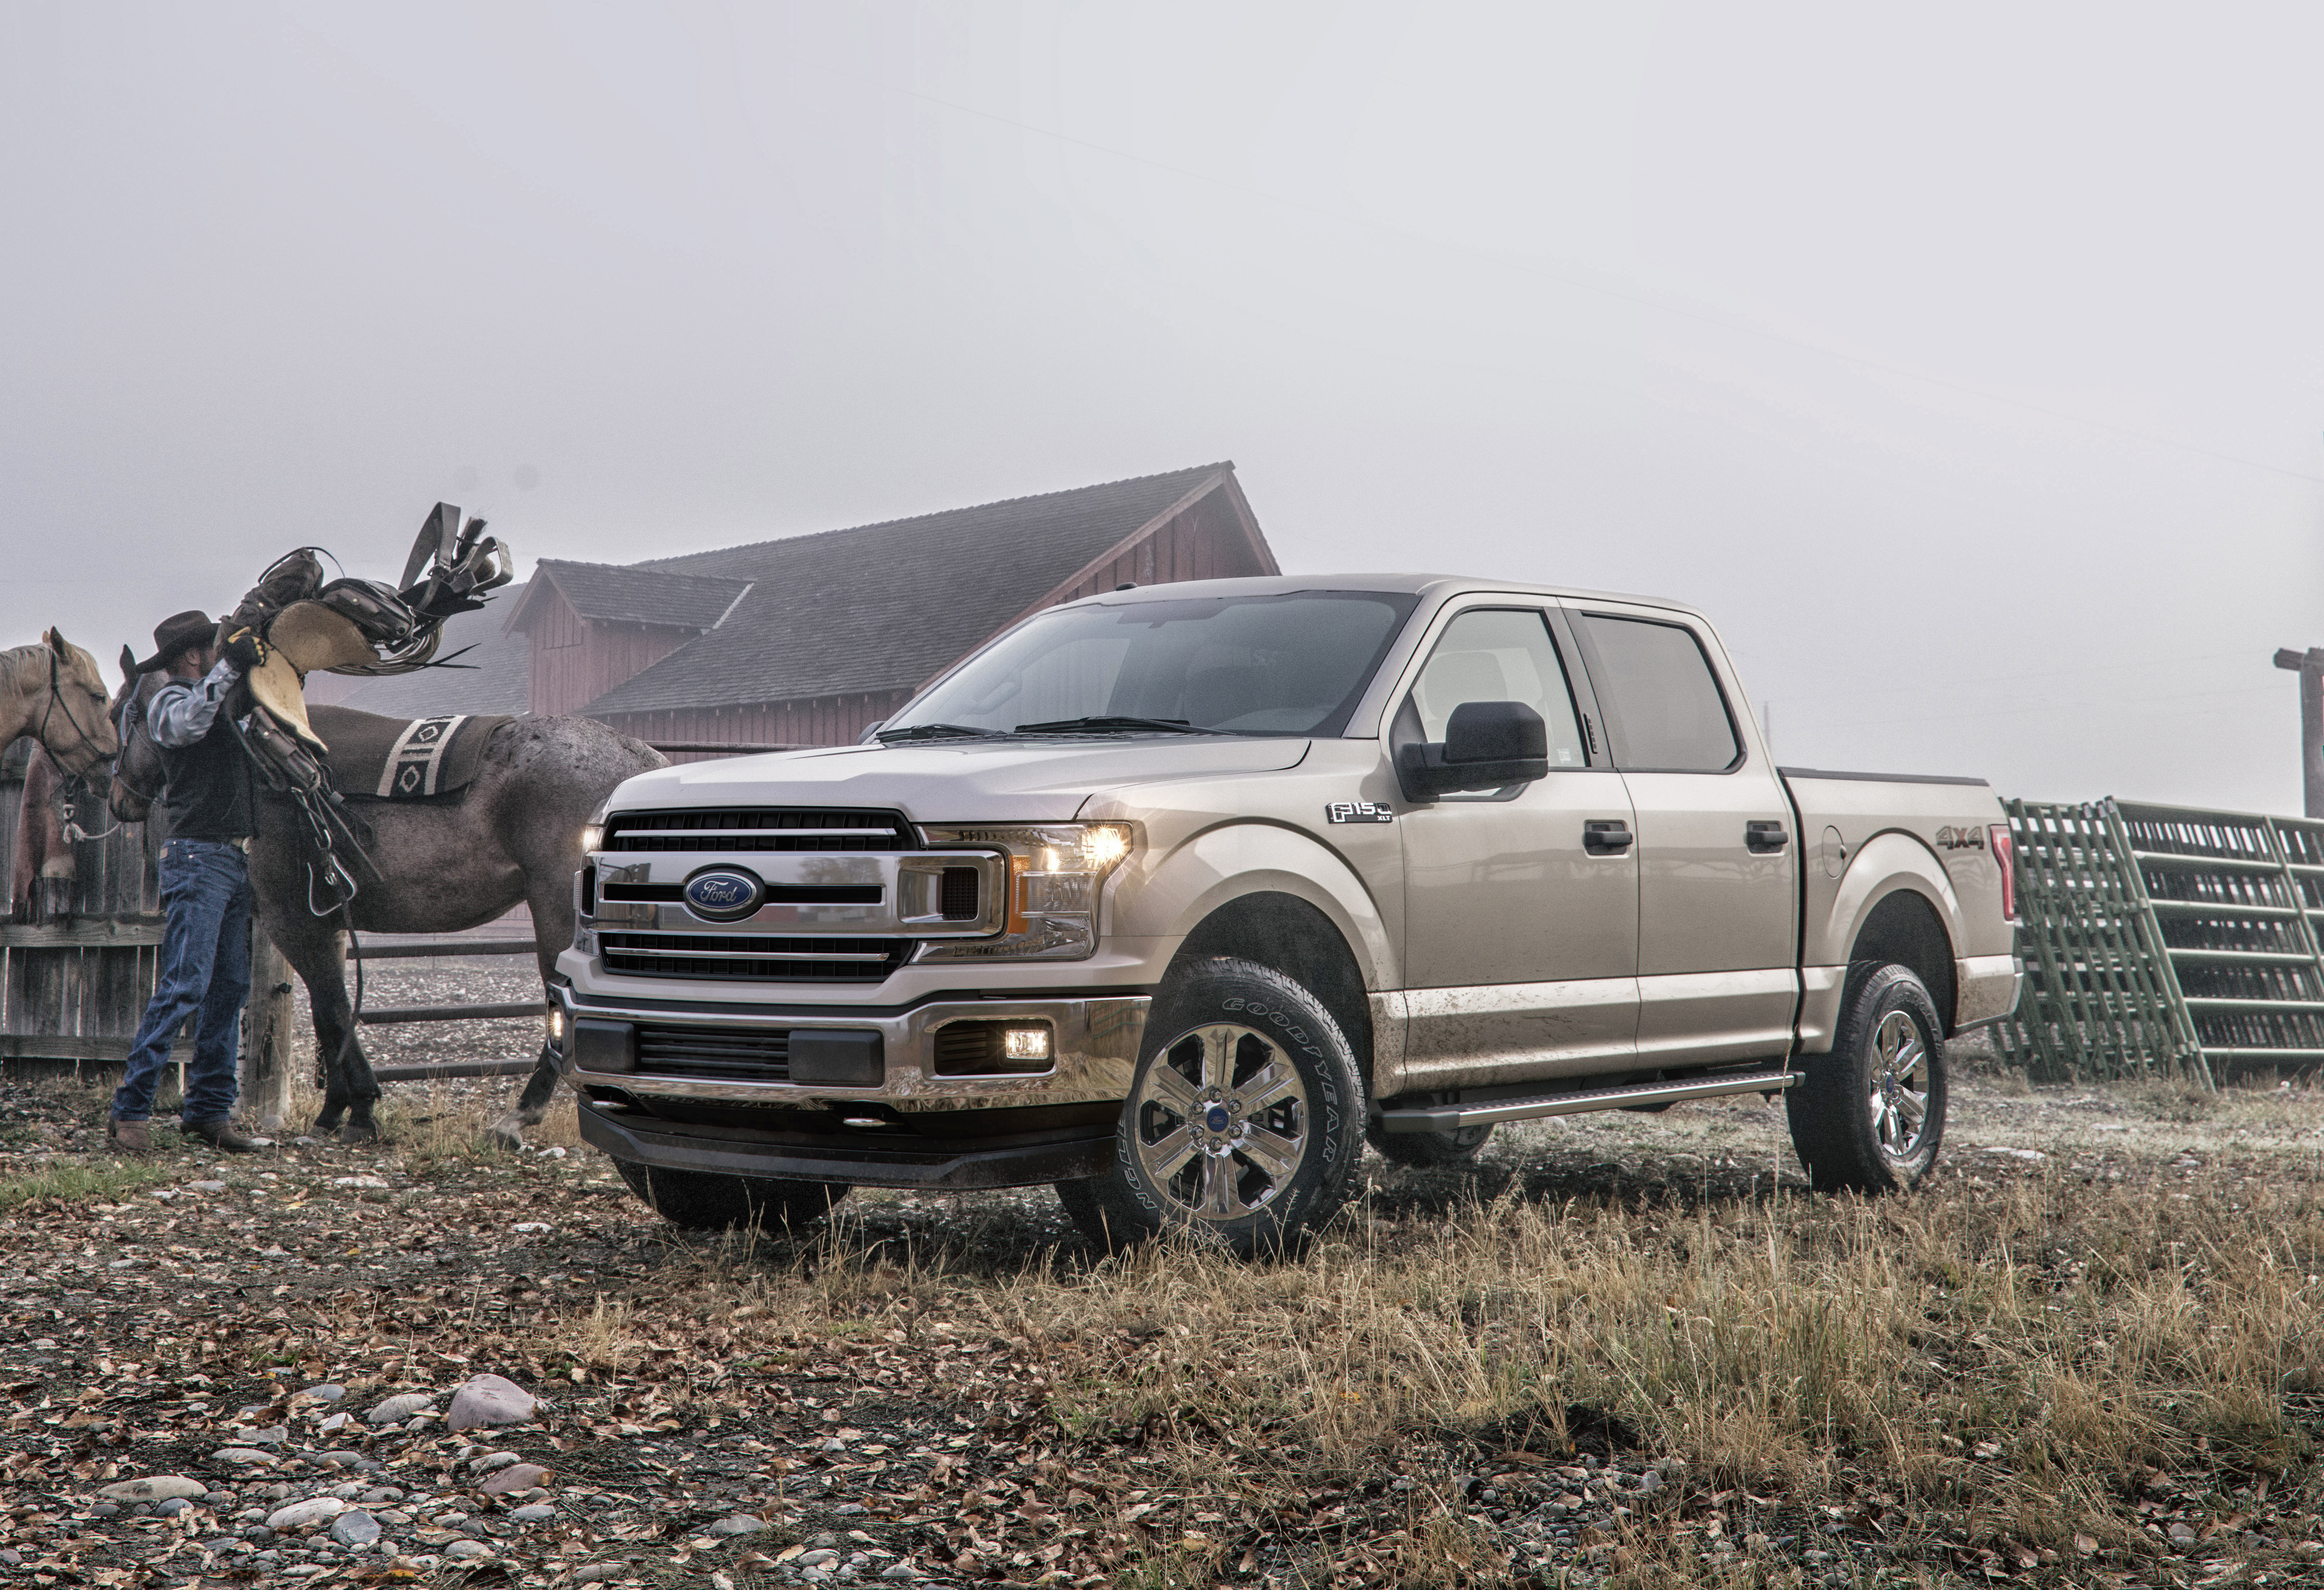 Report: The Ford F-150 diesel engine comes from Jaguar ...